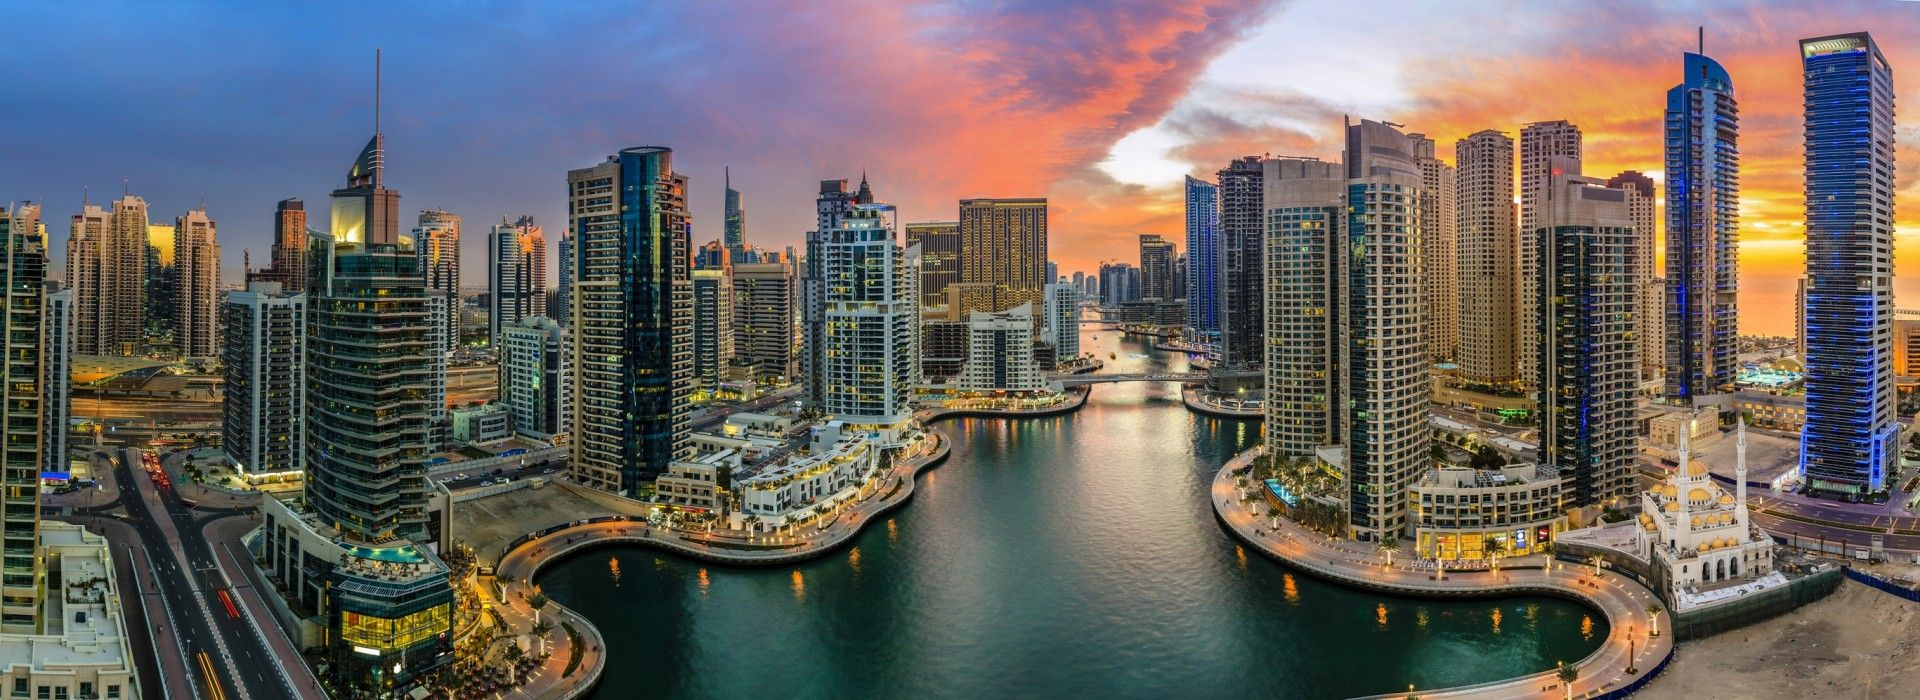 Sightseeing, attractions, culture and history Tours in Middle East